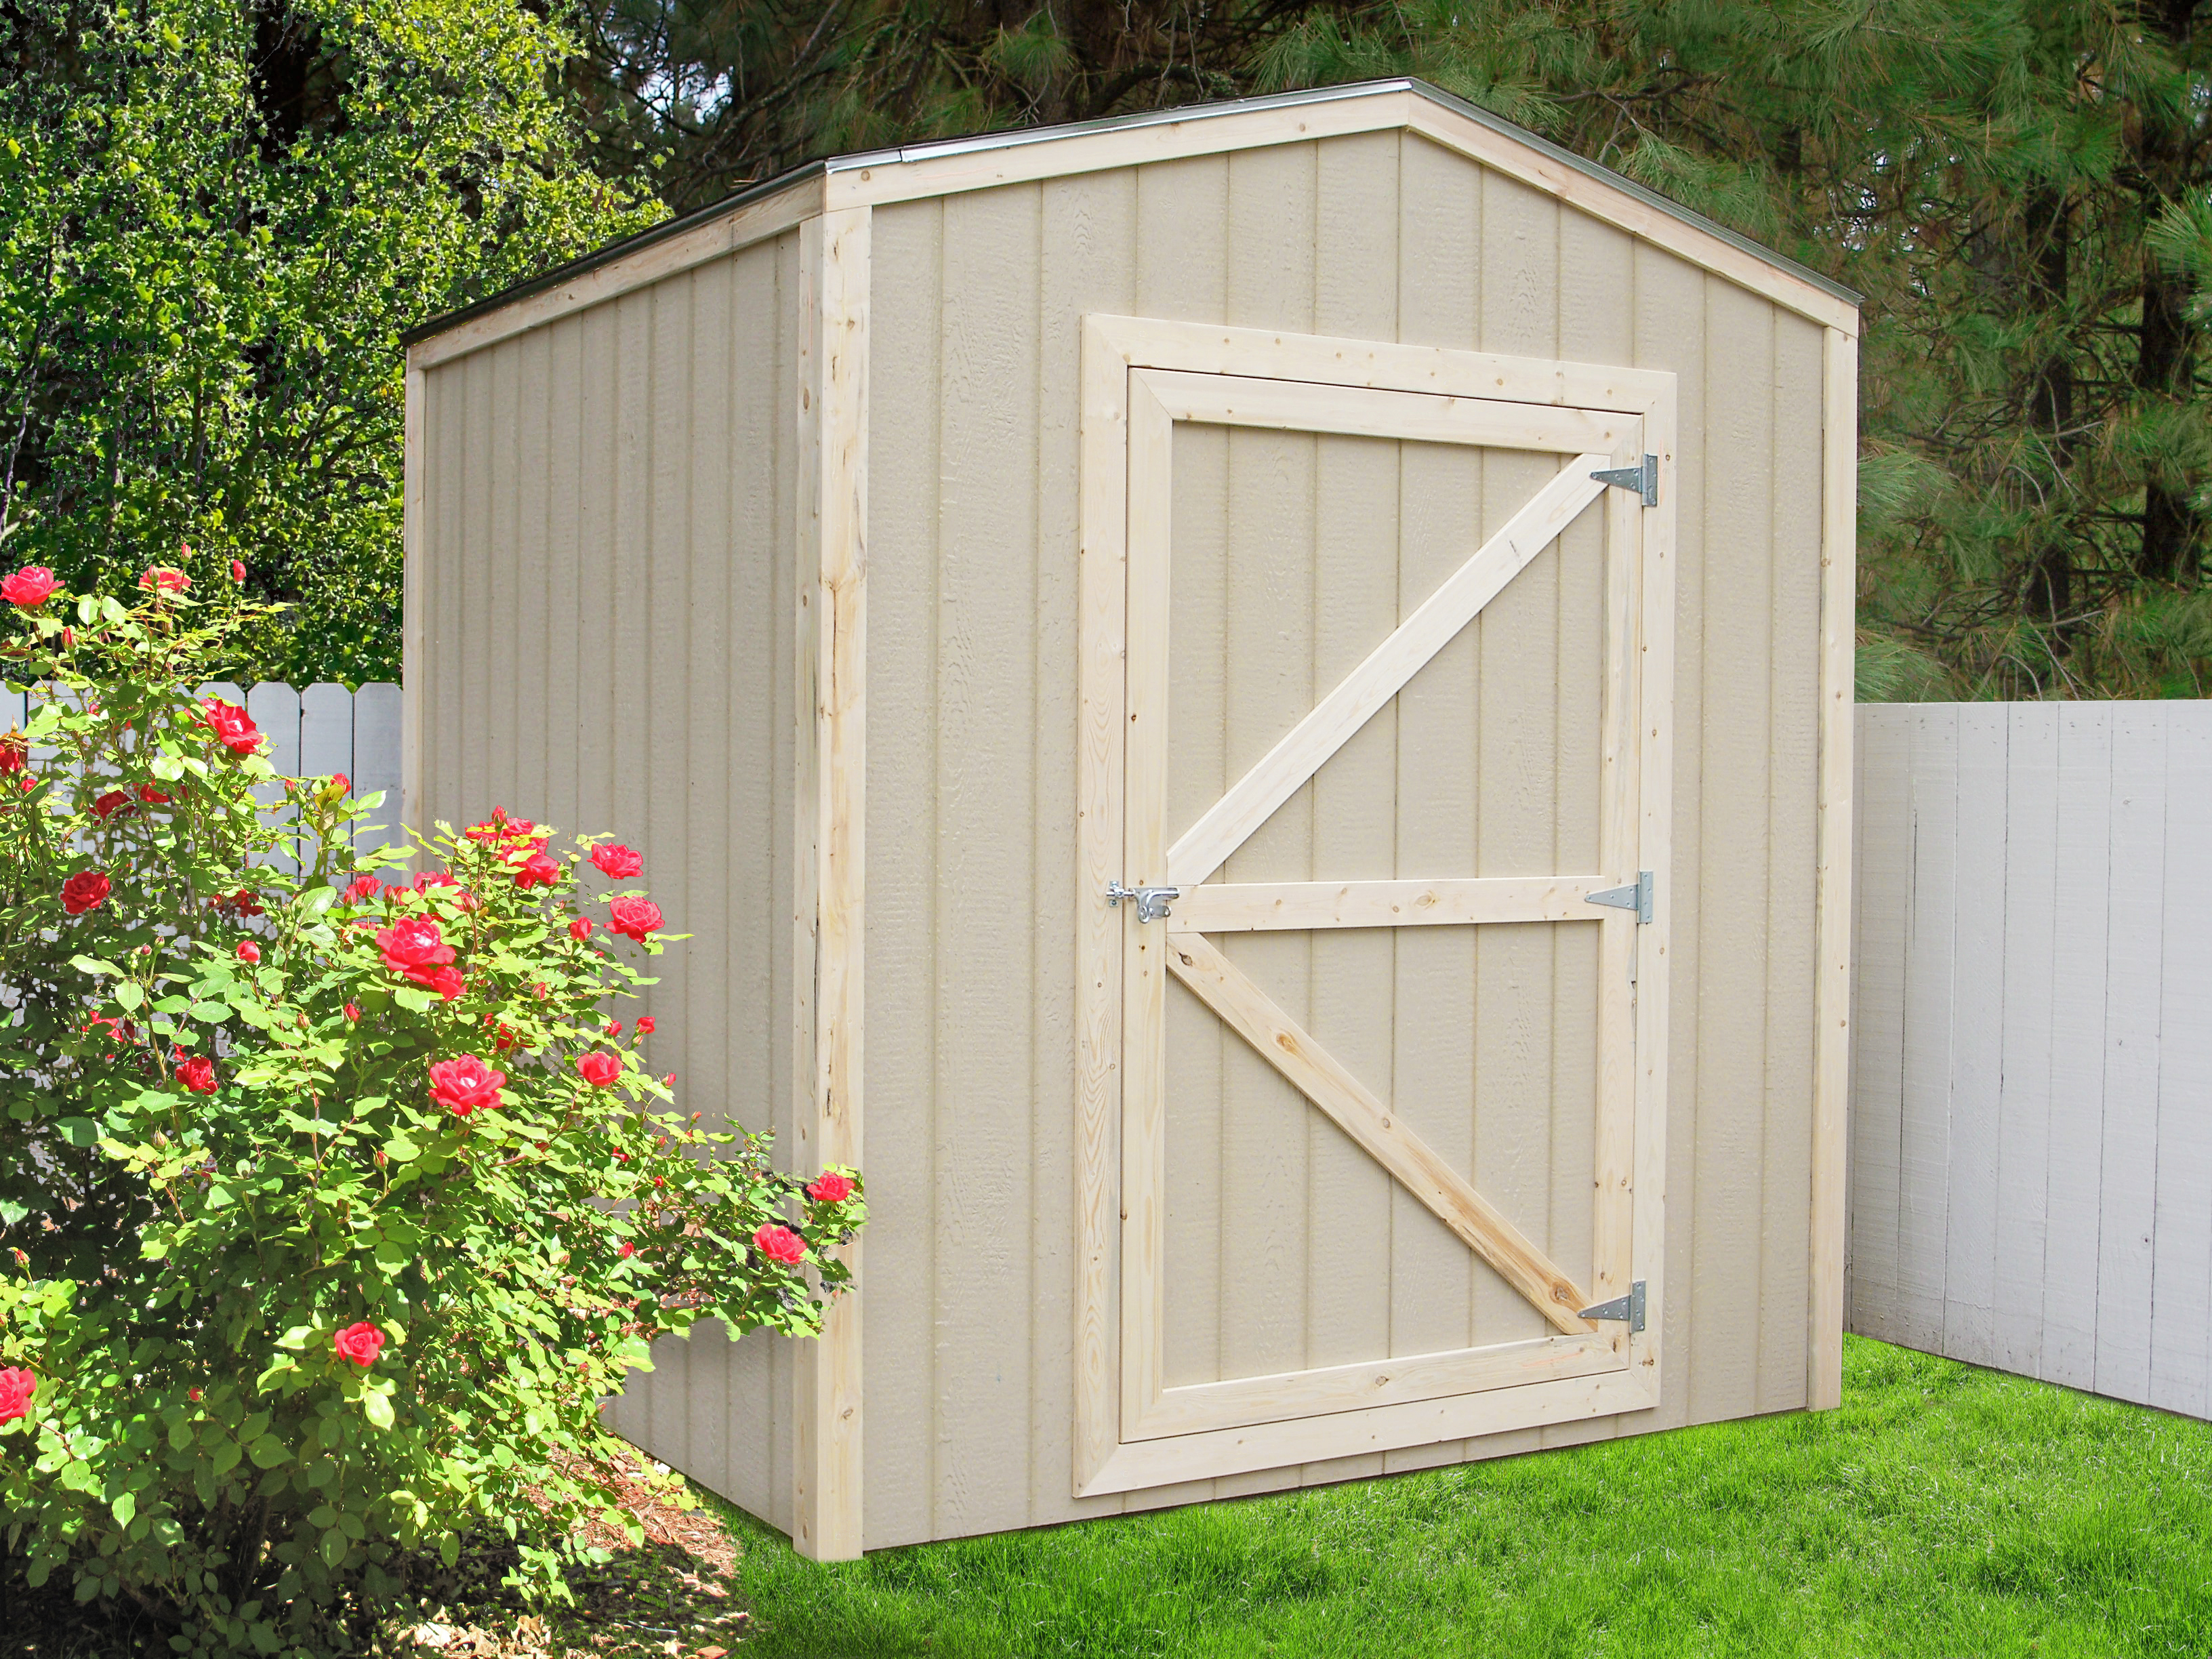 420 Friendly Grow Sheds - Grow Rooms - MMJ Personal Growing | Green